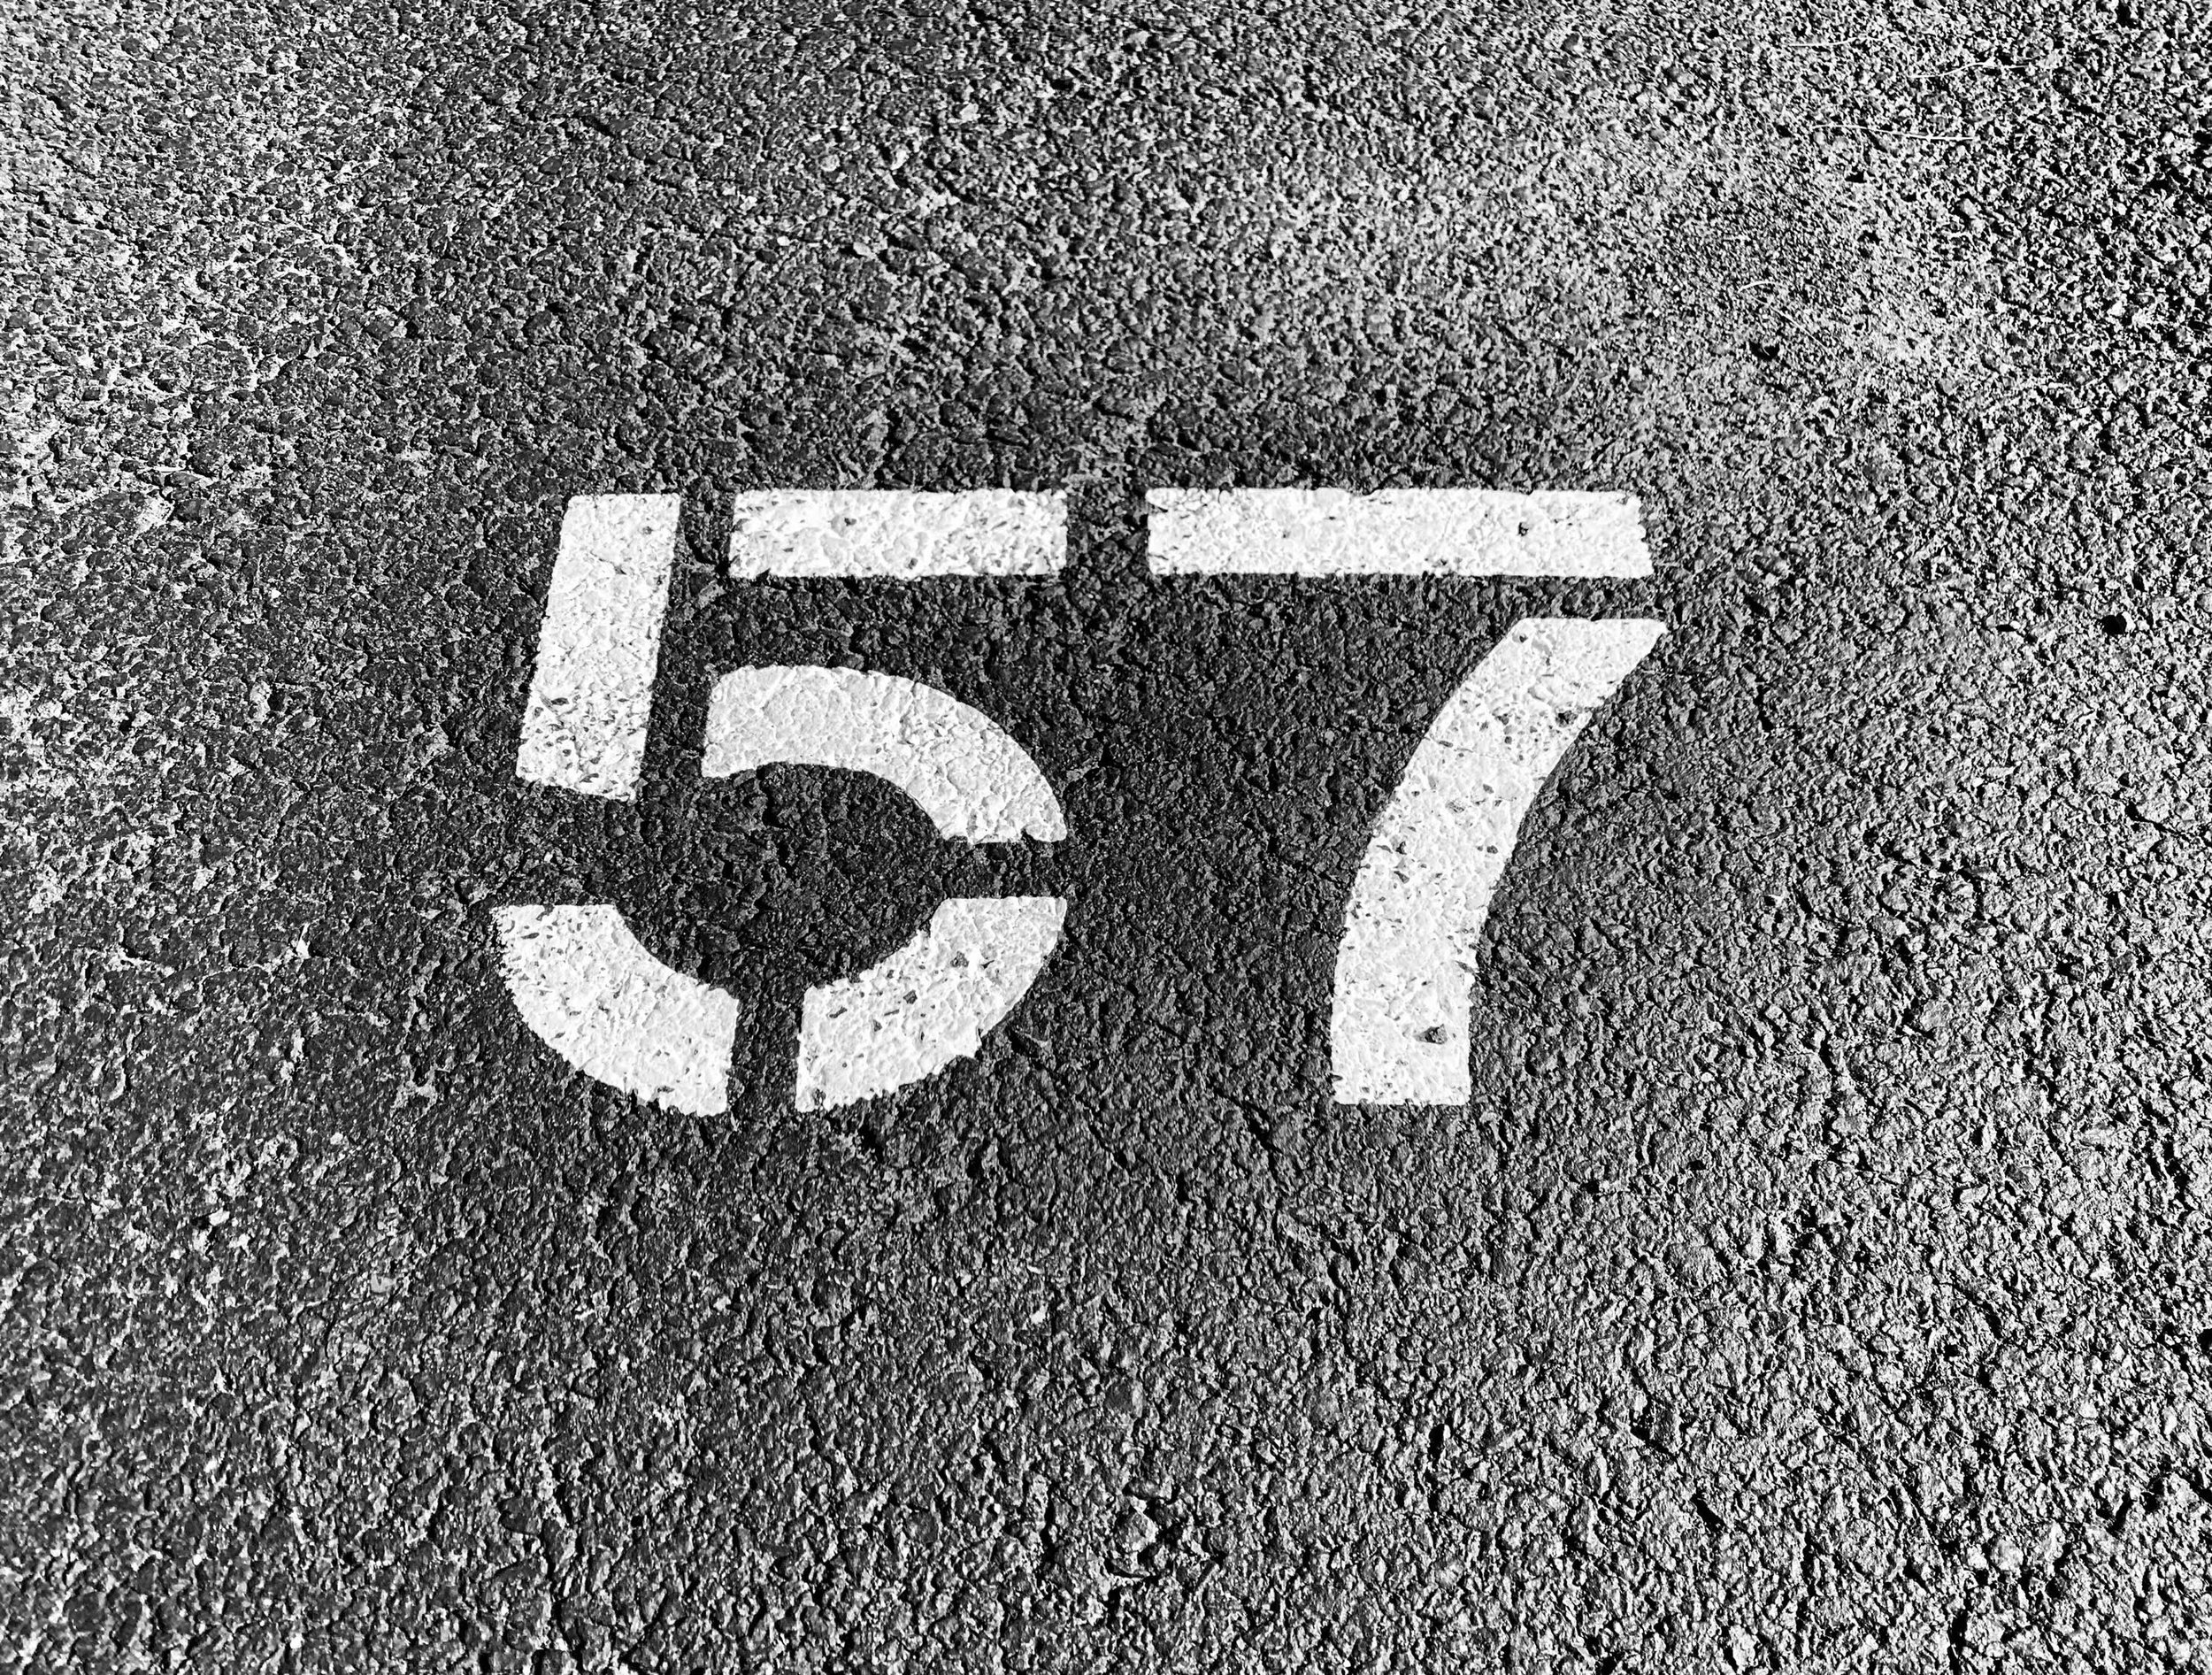 You Don't Know - J57 feat. Finding Novyon